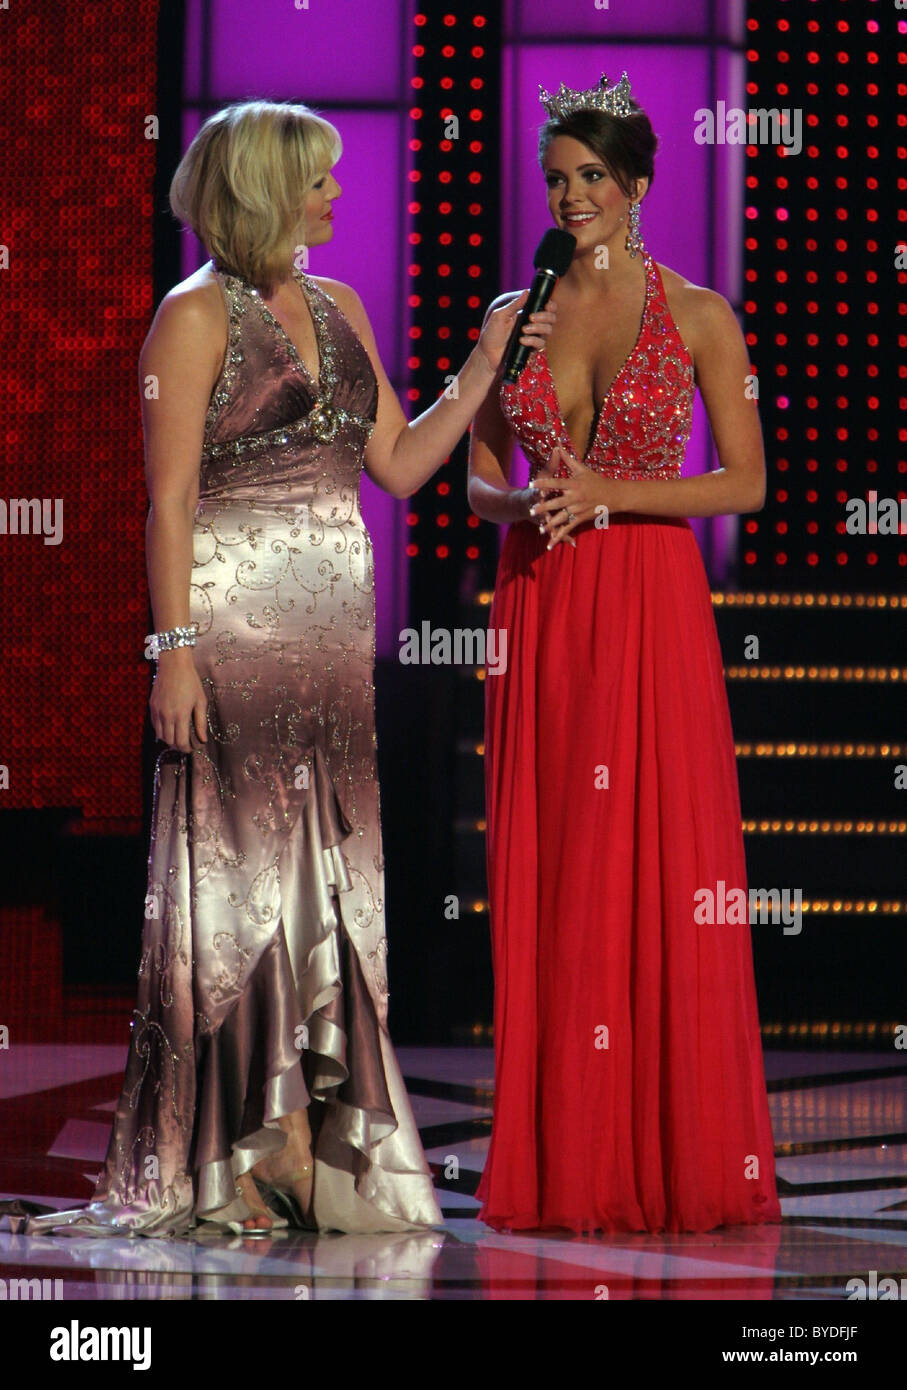 Kellye Cash and Jennifer Berry Miss America Preliminary Competition ...